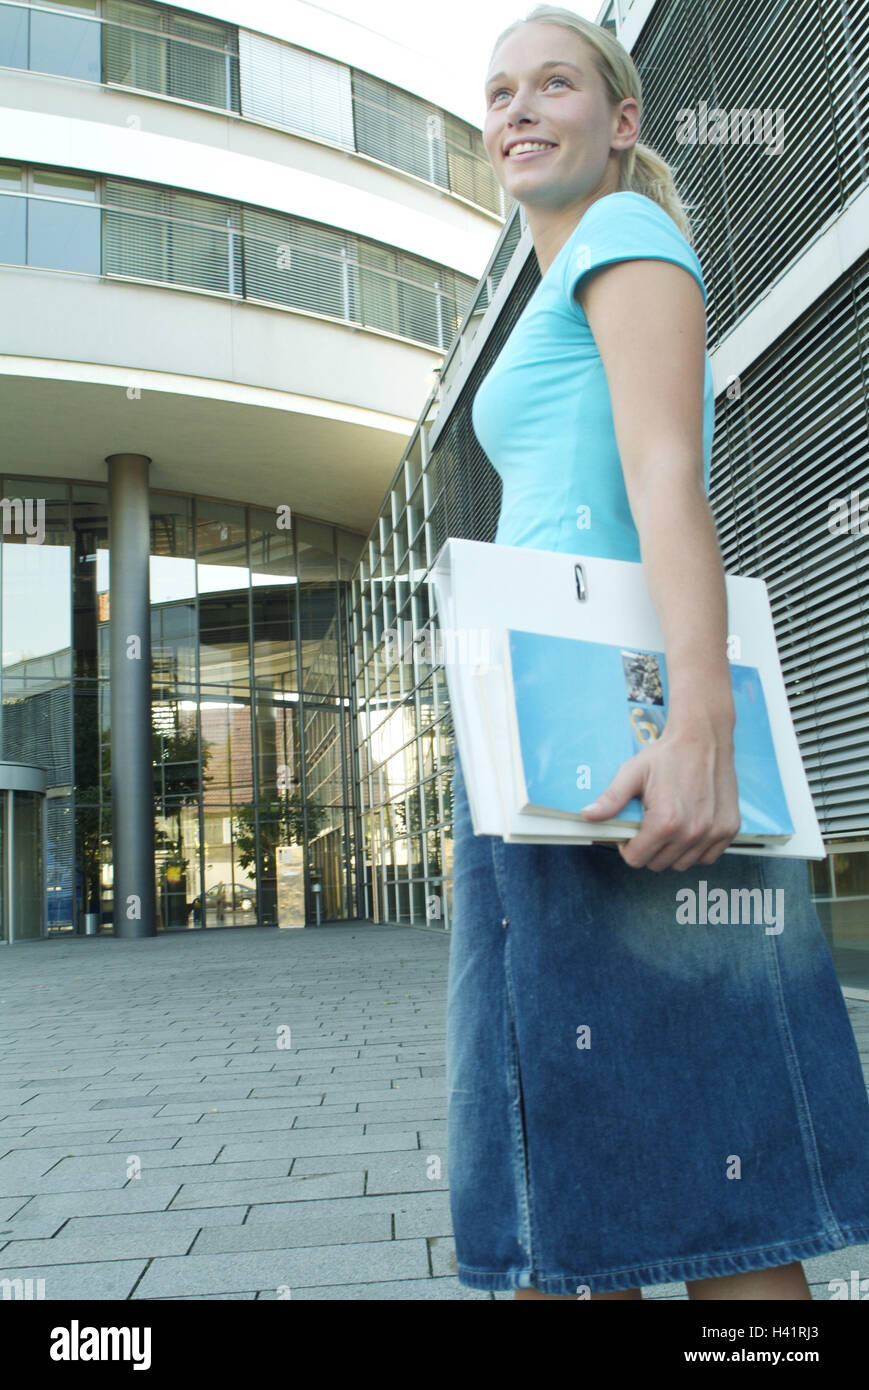 Woman, young, bases, background, office building, 23 years, occupation, professional life, education, student, university, - Stock Image